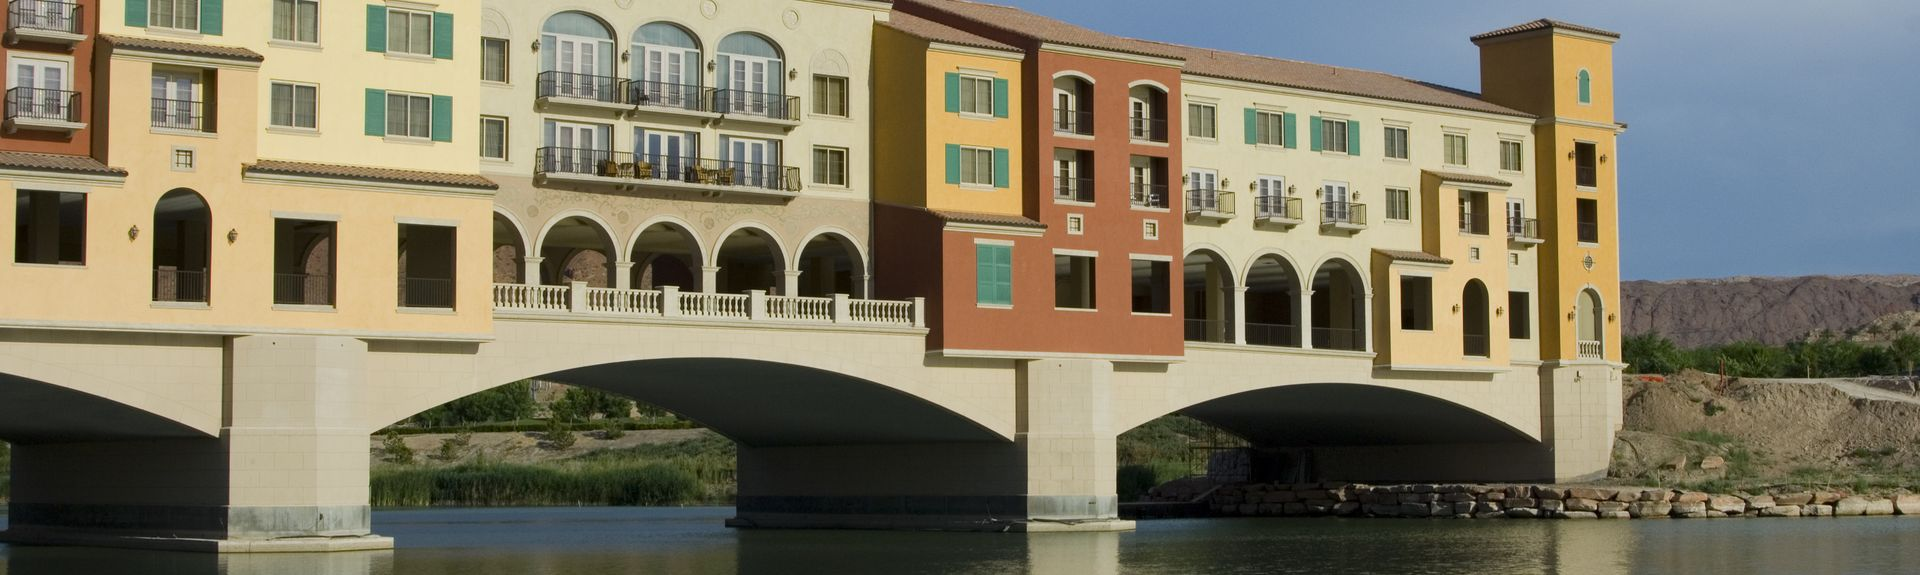 Lake Las Vegas, Henderson, Clark County, Nevada, United States of America